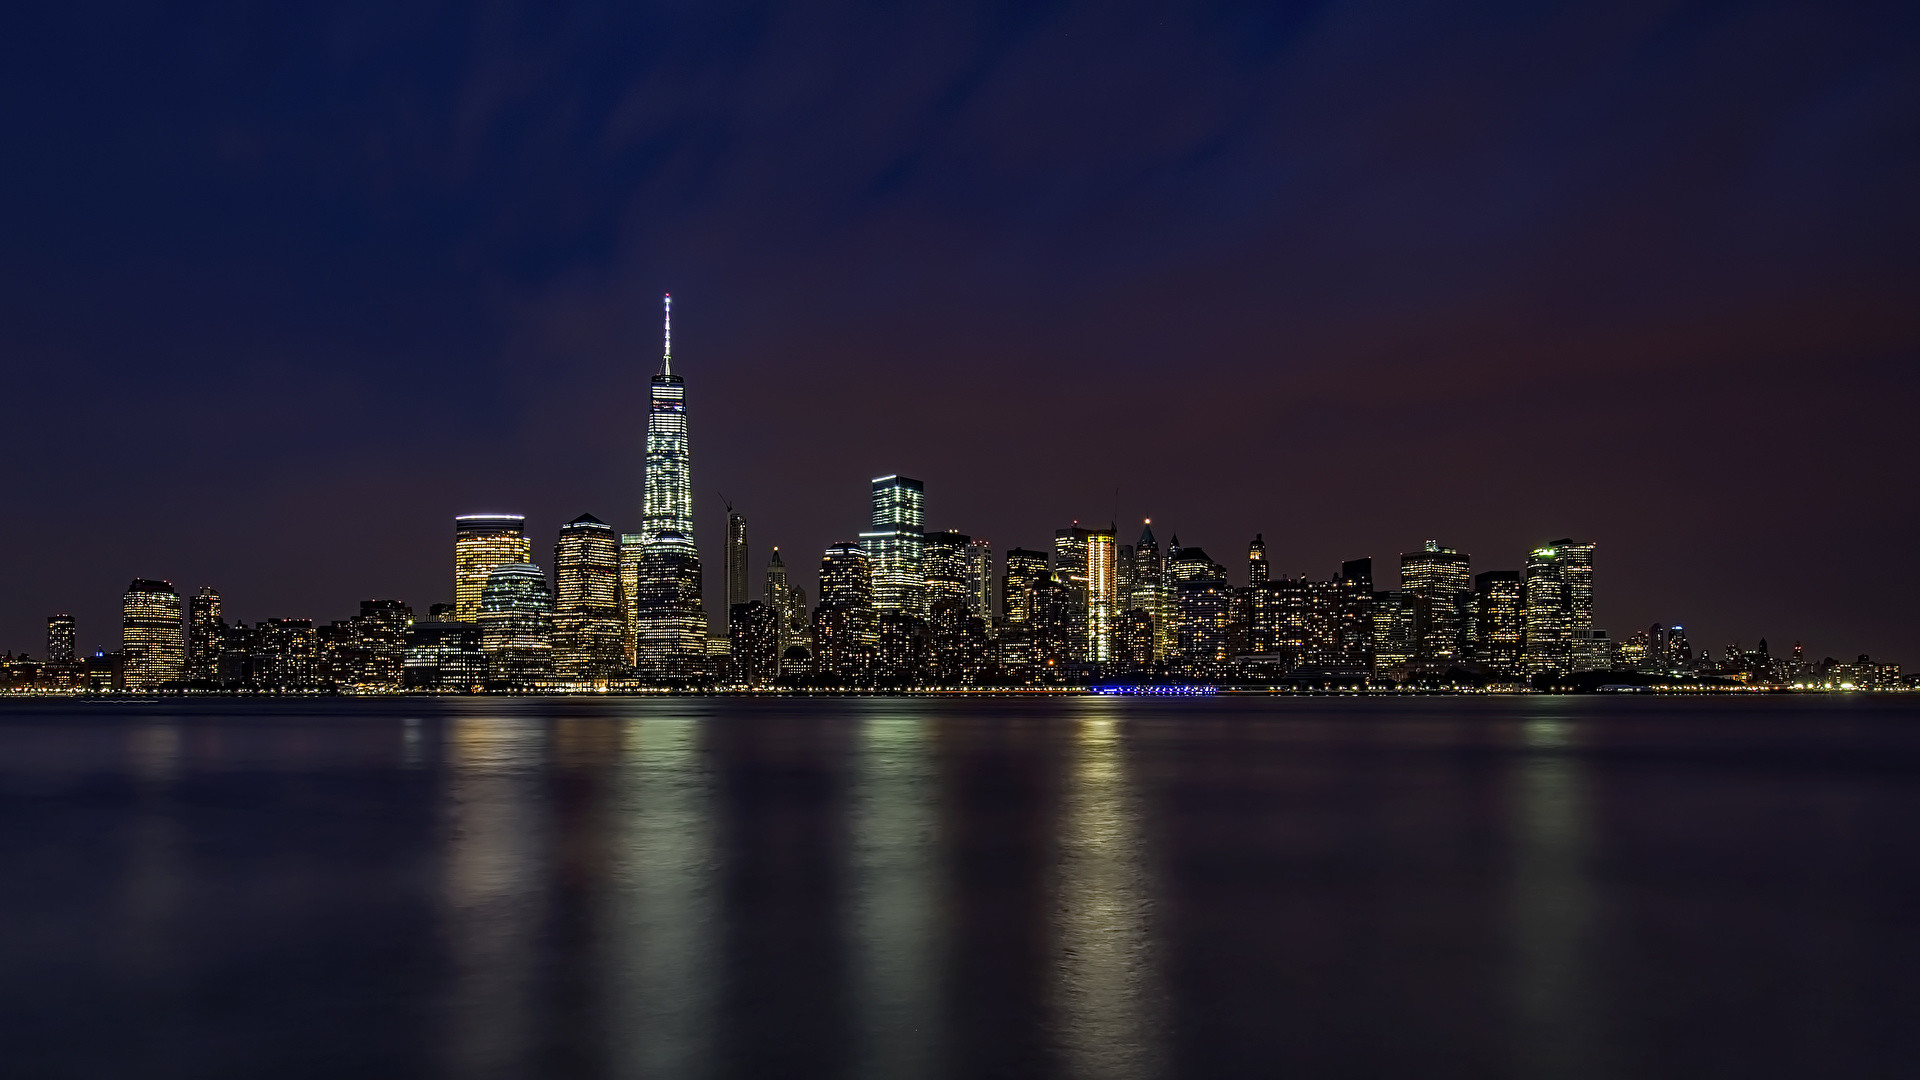 Night Time City Wallpaper 63 Images